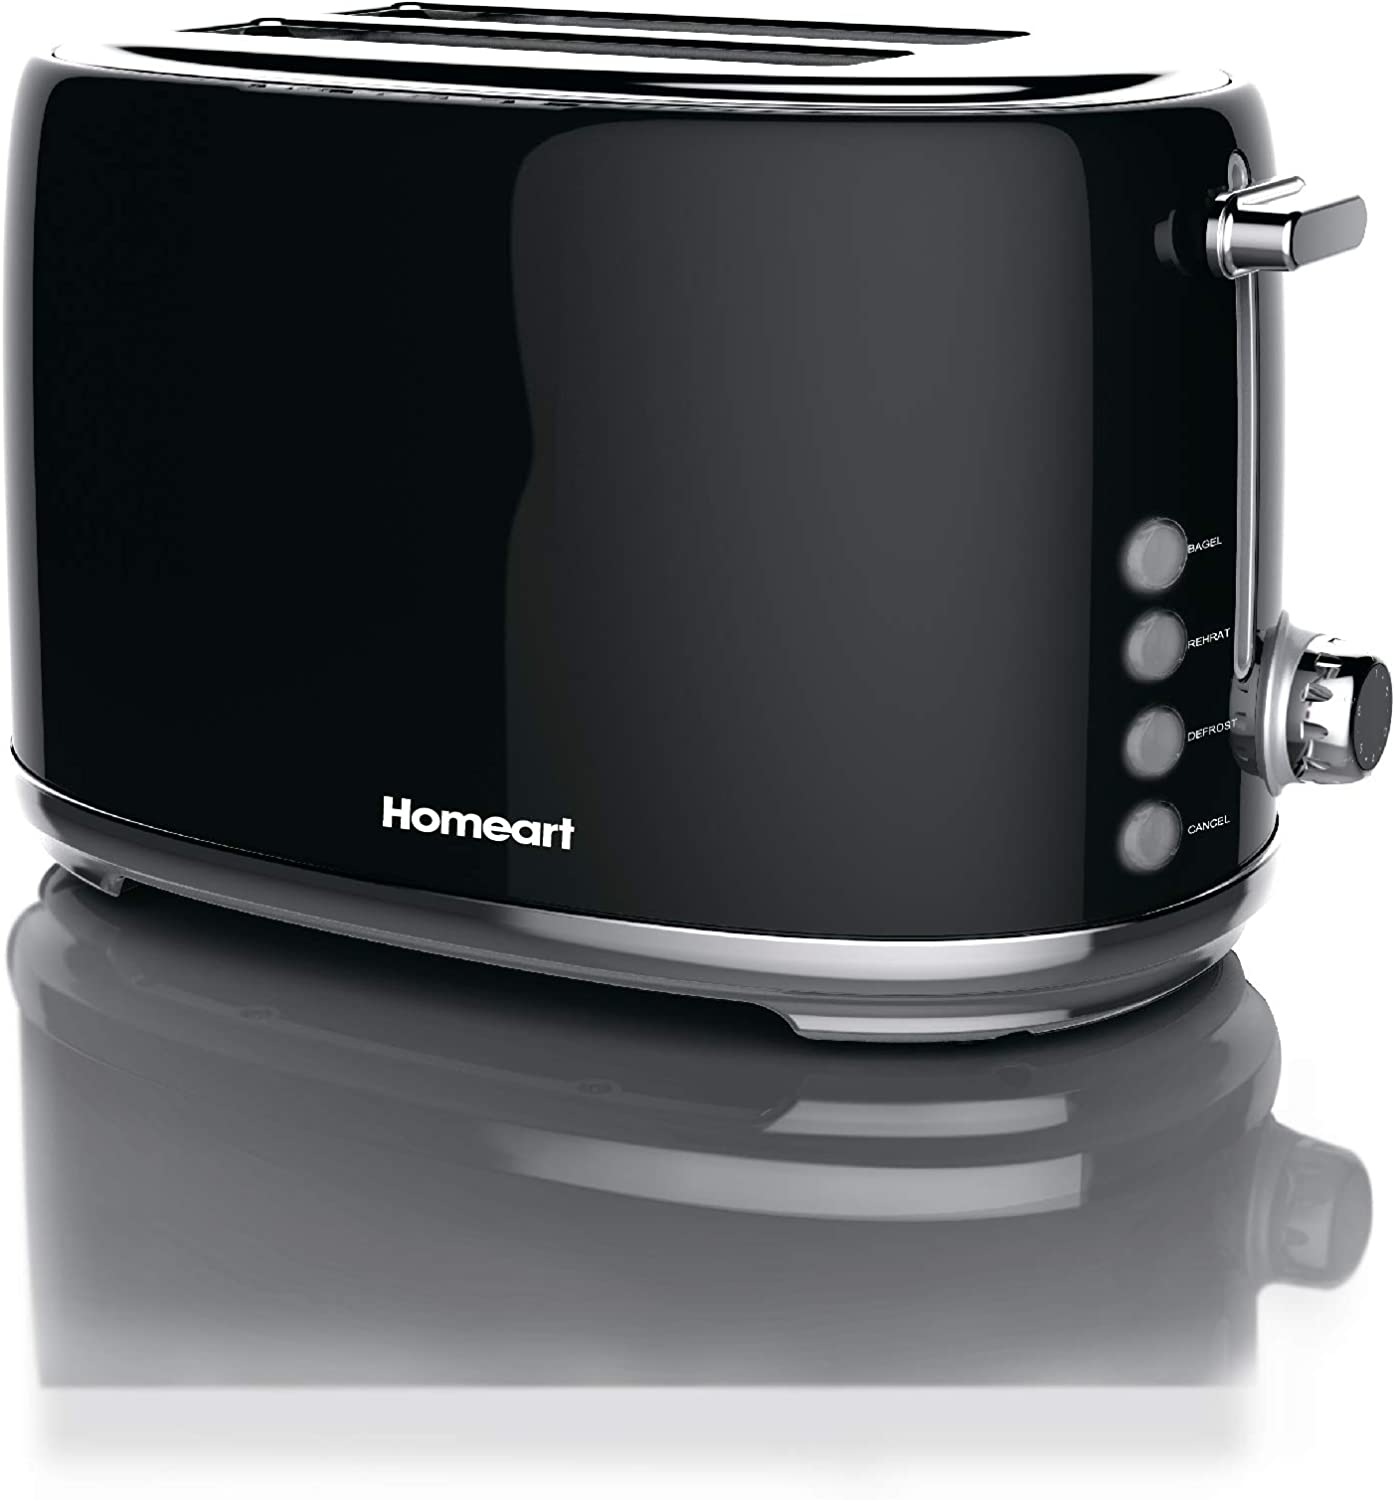 Homeart Artisan Toaster, 2 Slice, Black